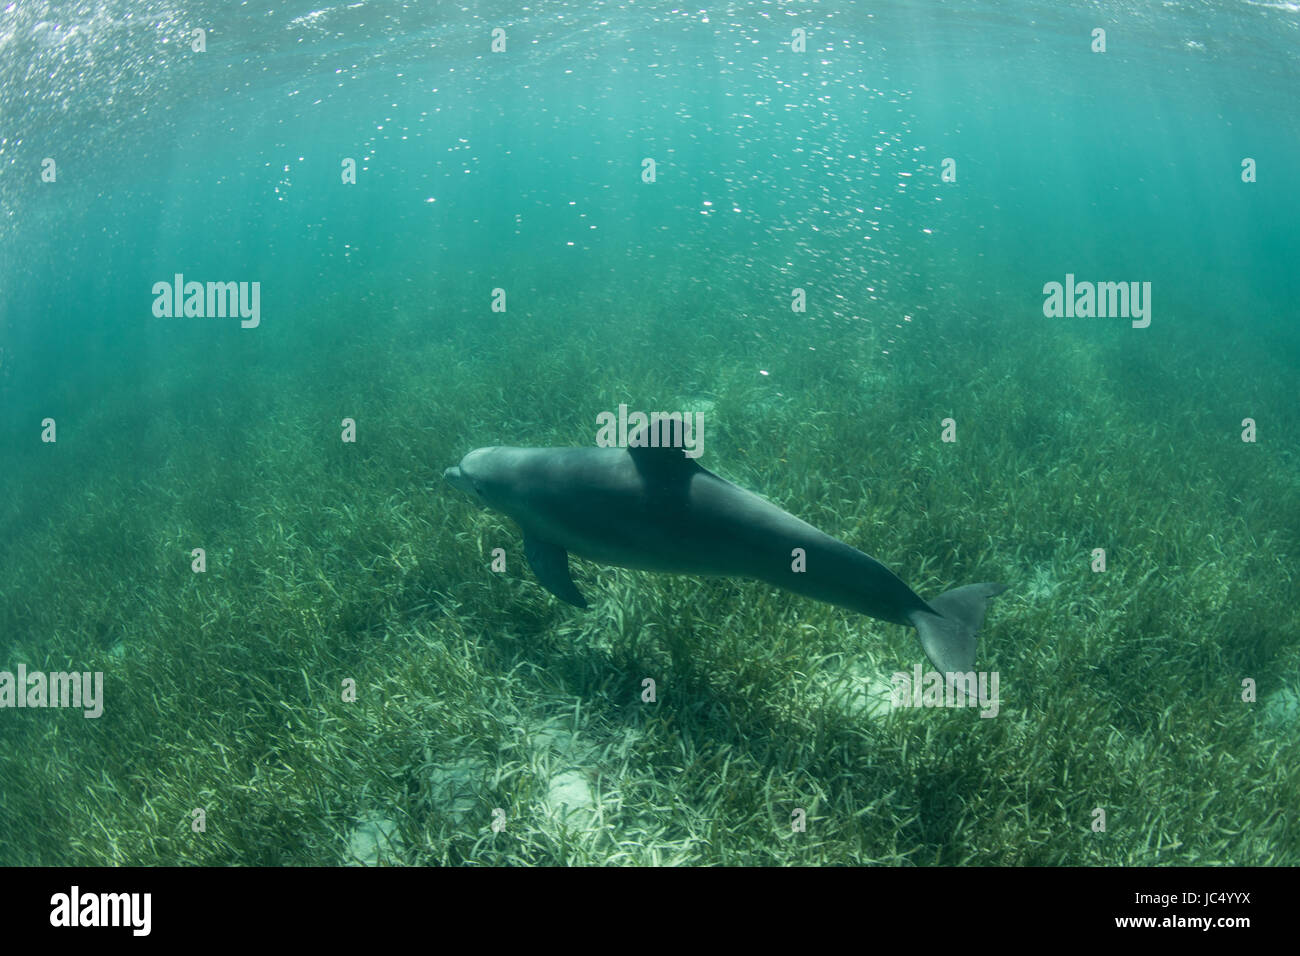 A Bottlenose dolphin swims over a seagrass meadow in Turneffe Atoll off the coast of Belize. This species is an - Stock Image